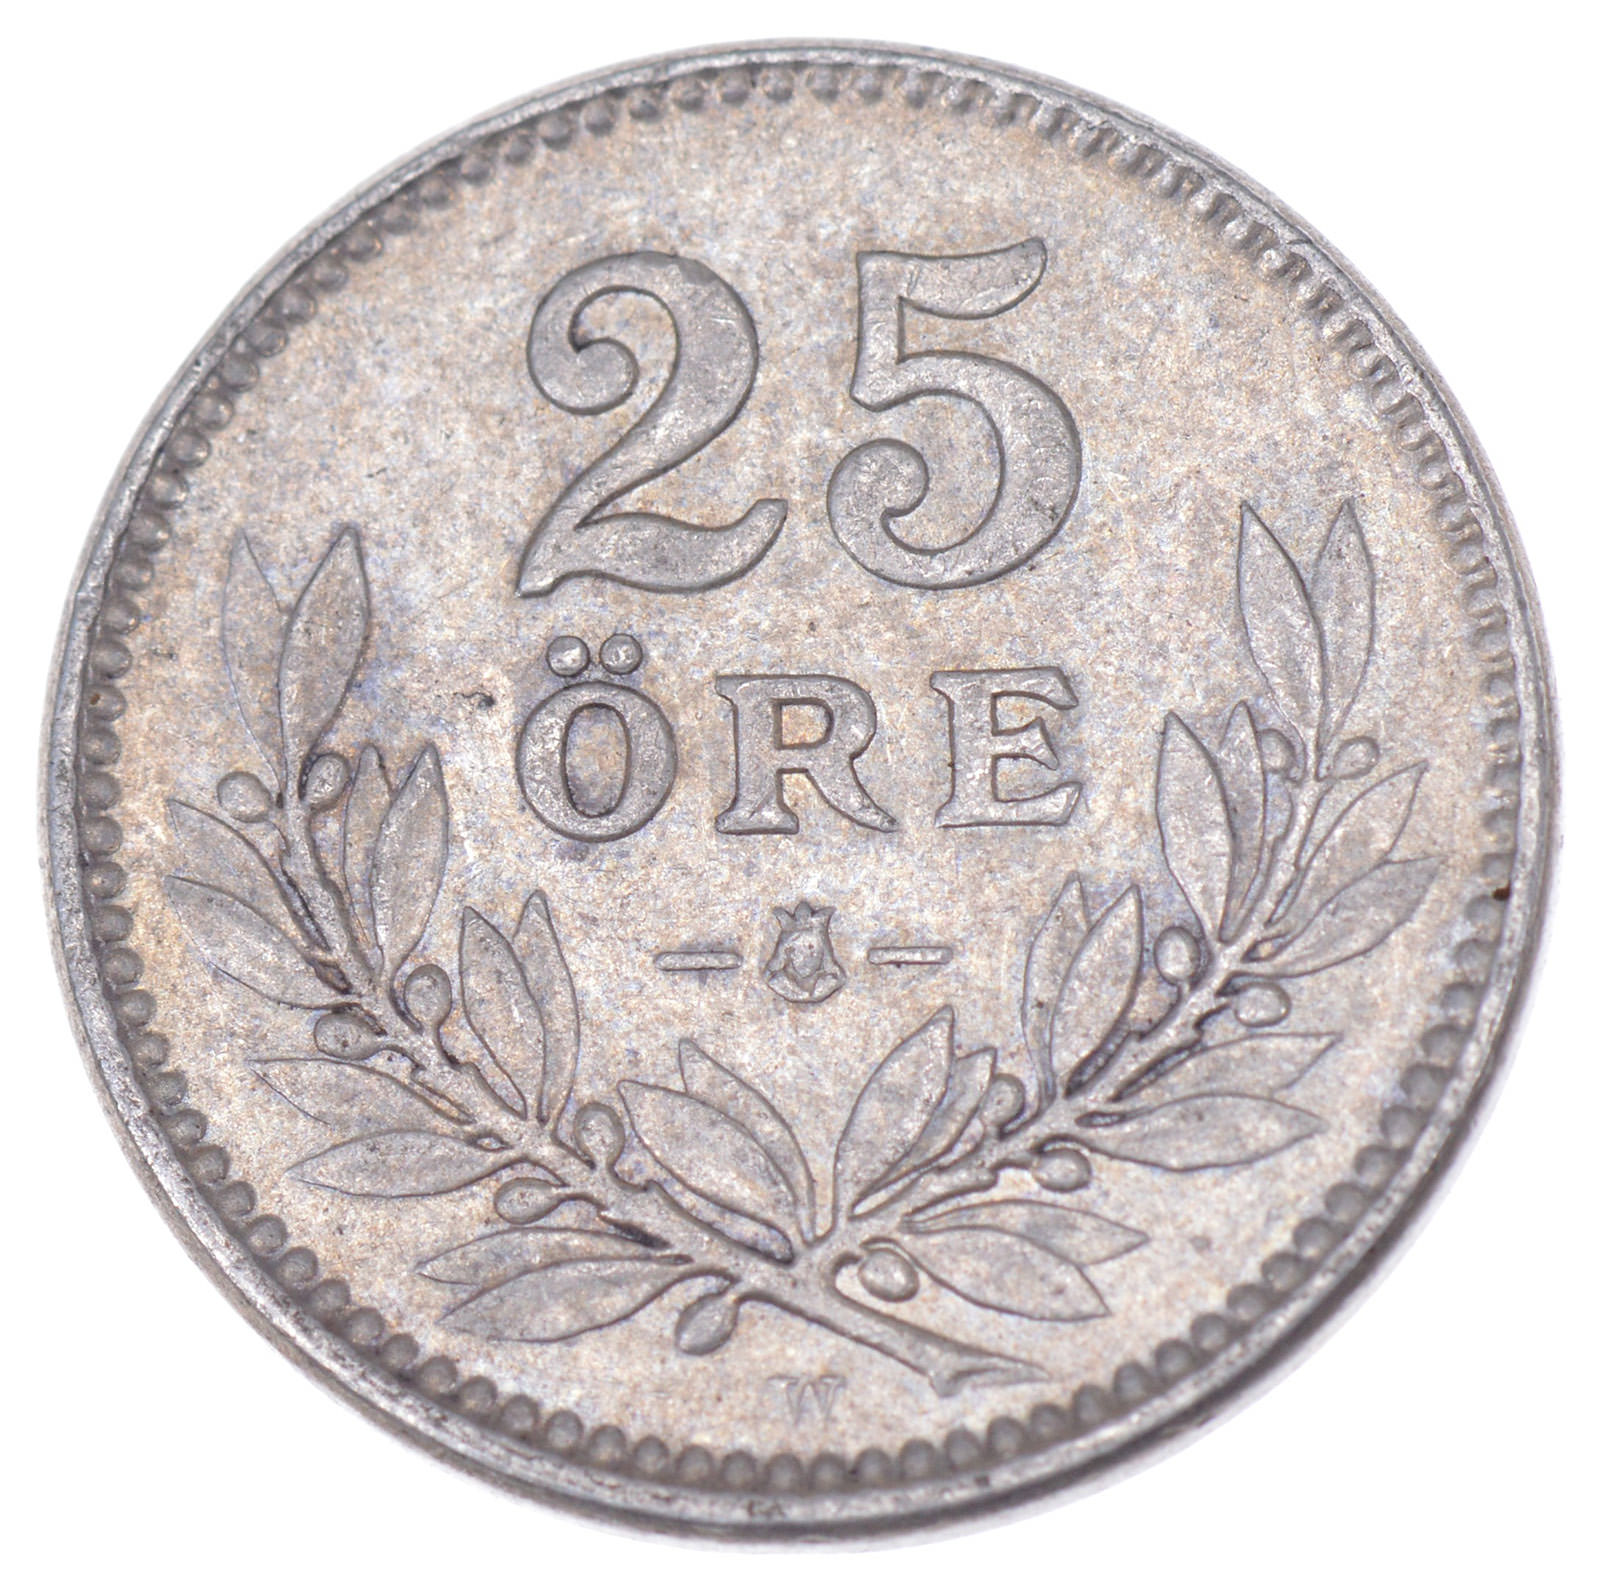 SILVER - 1917 Sweden 25 Ore - World Silver Coin | Property Room